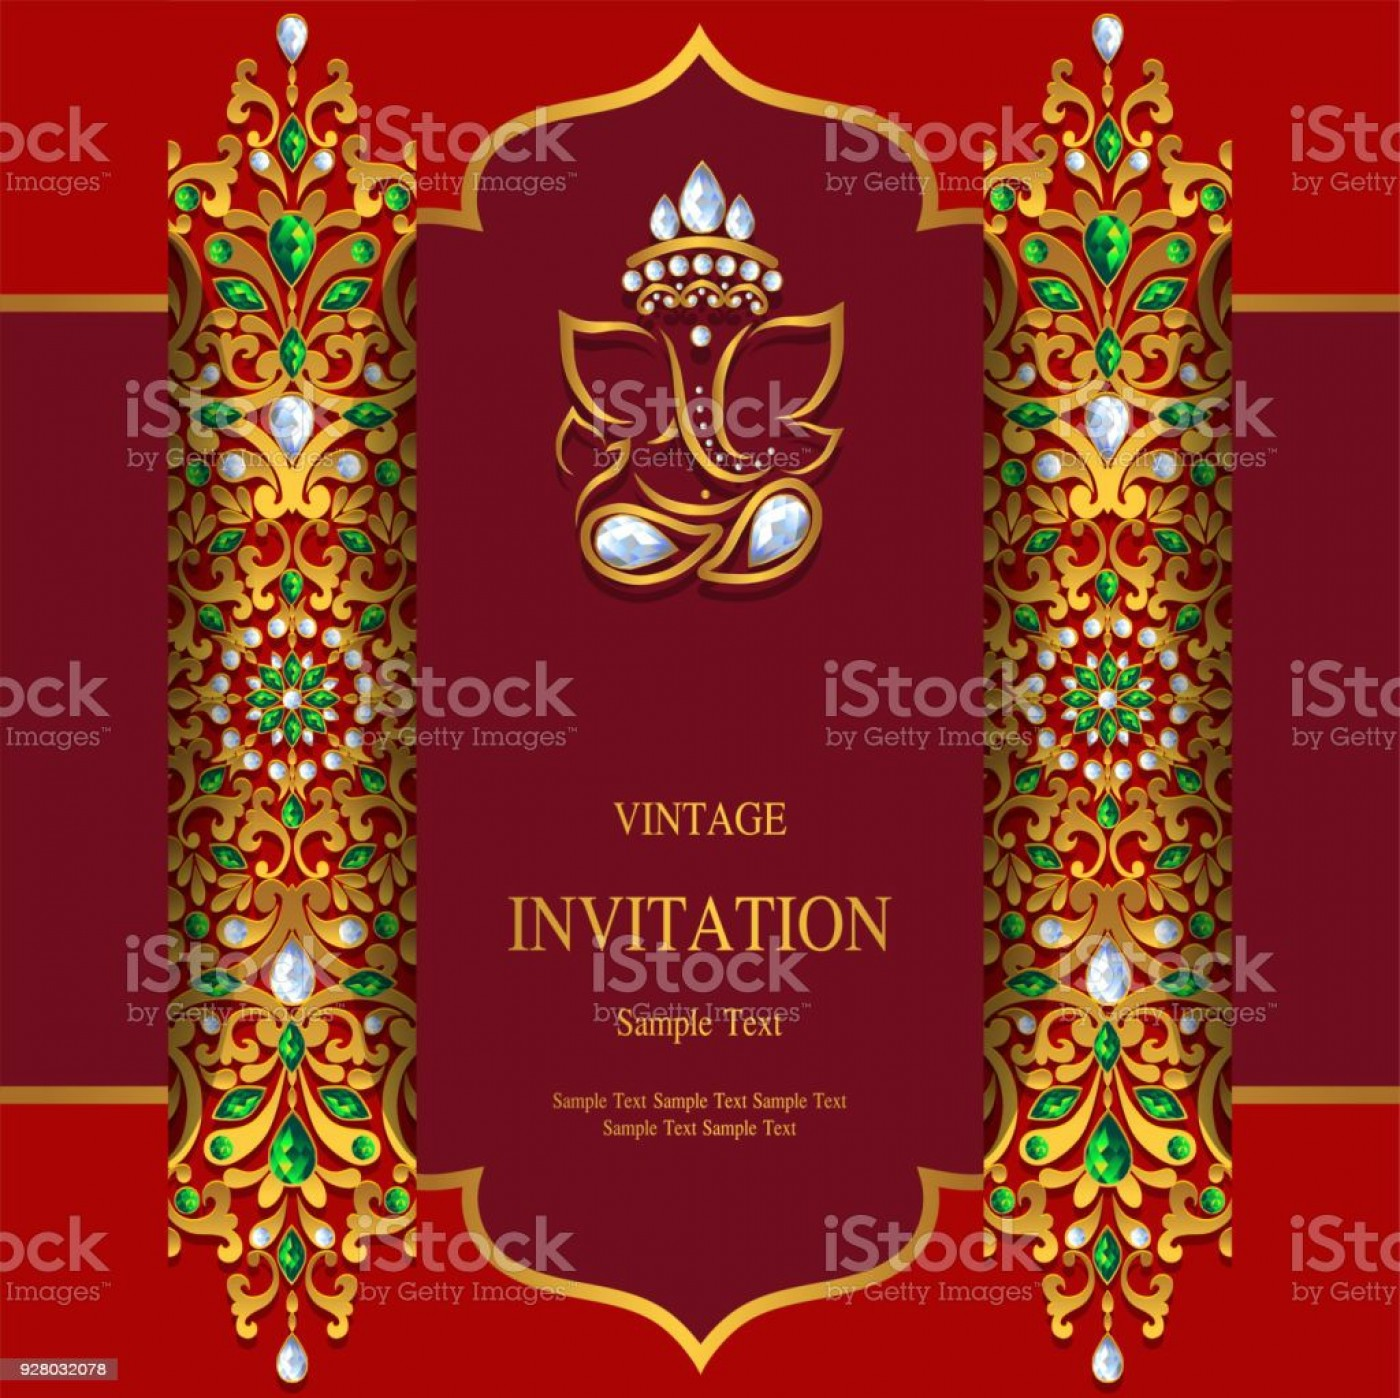 008 Fascinating Indian Wedding Invitation Template High Resolution  Psd Free Download Marriage Online For Friend1400